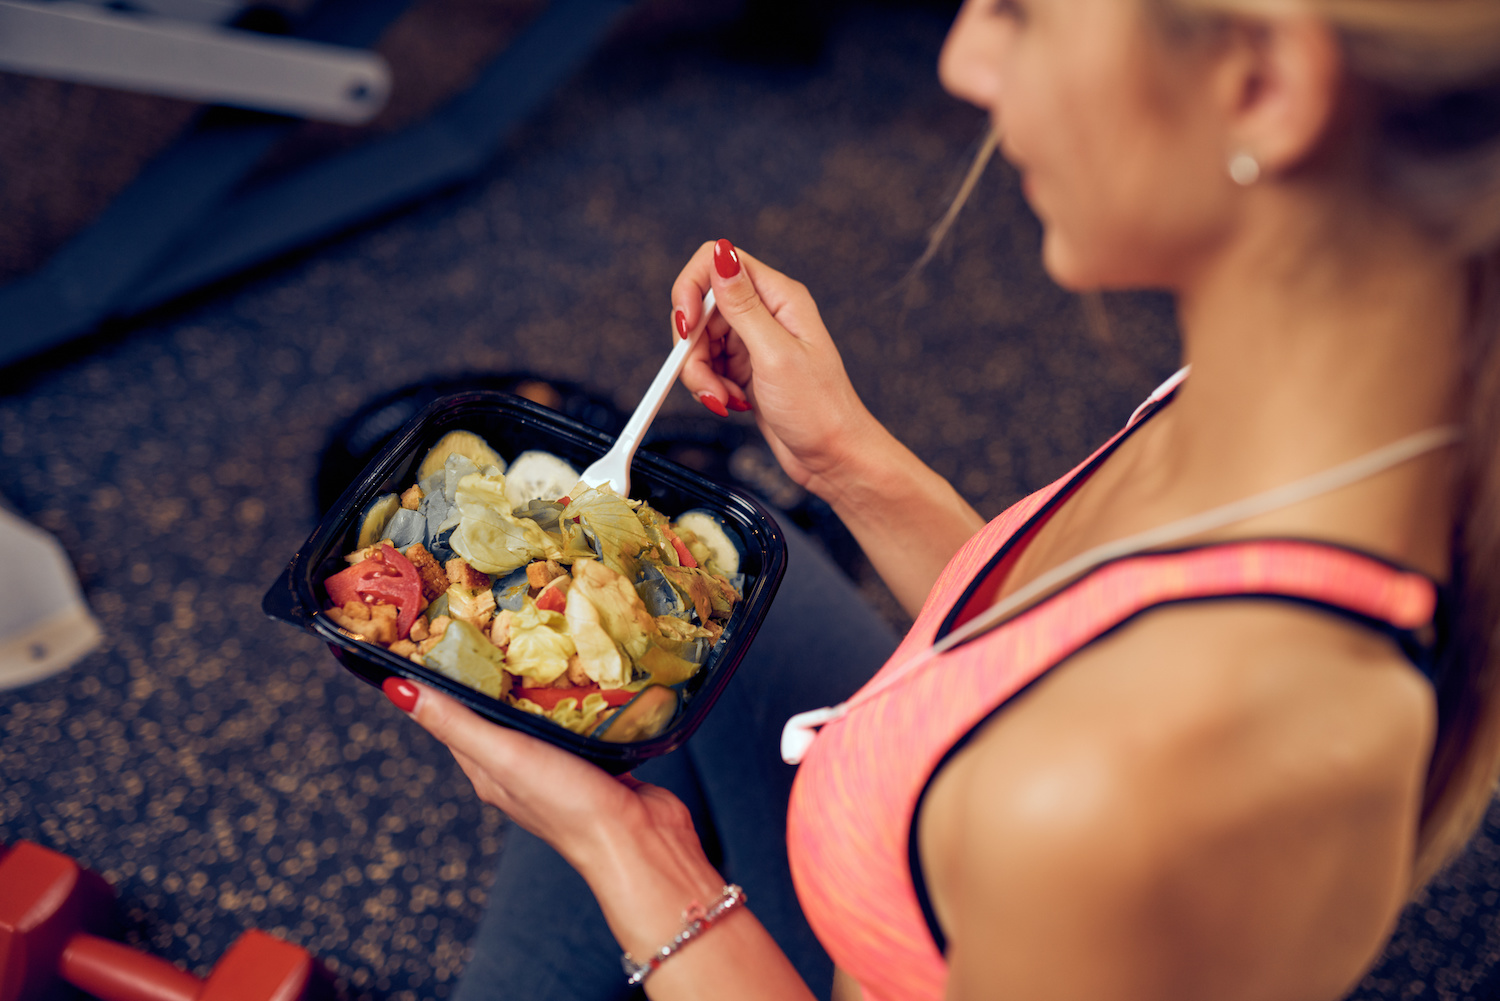 Woman eating meal prepared by a nutrition coach